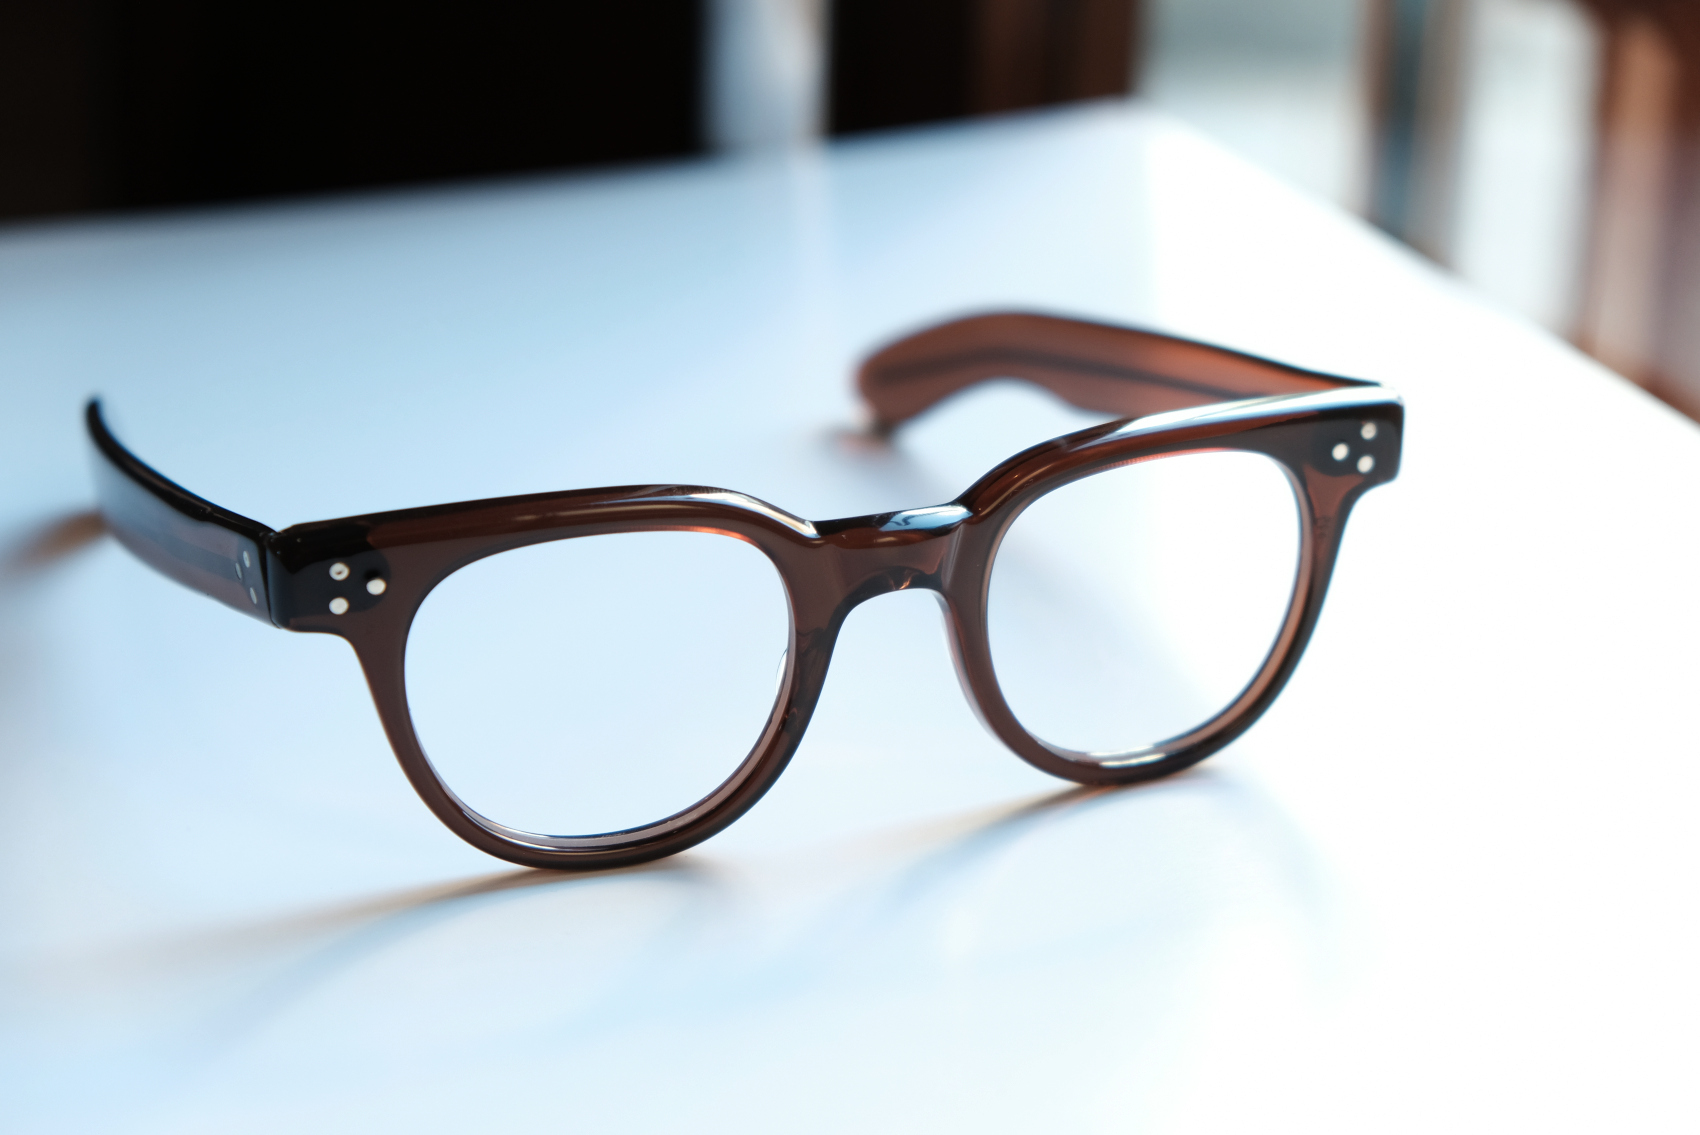 TART OPTICAL FDR(Regency eyewear)vintage